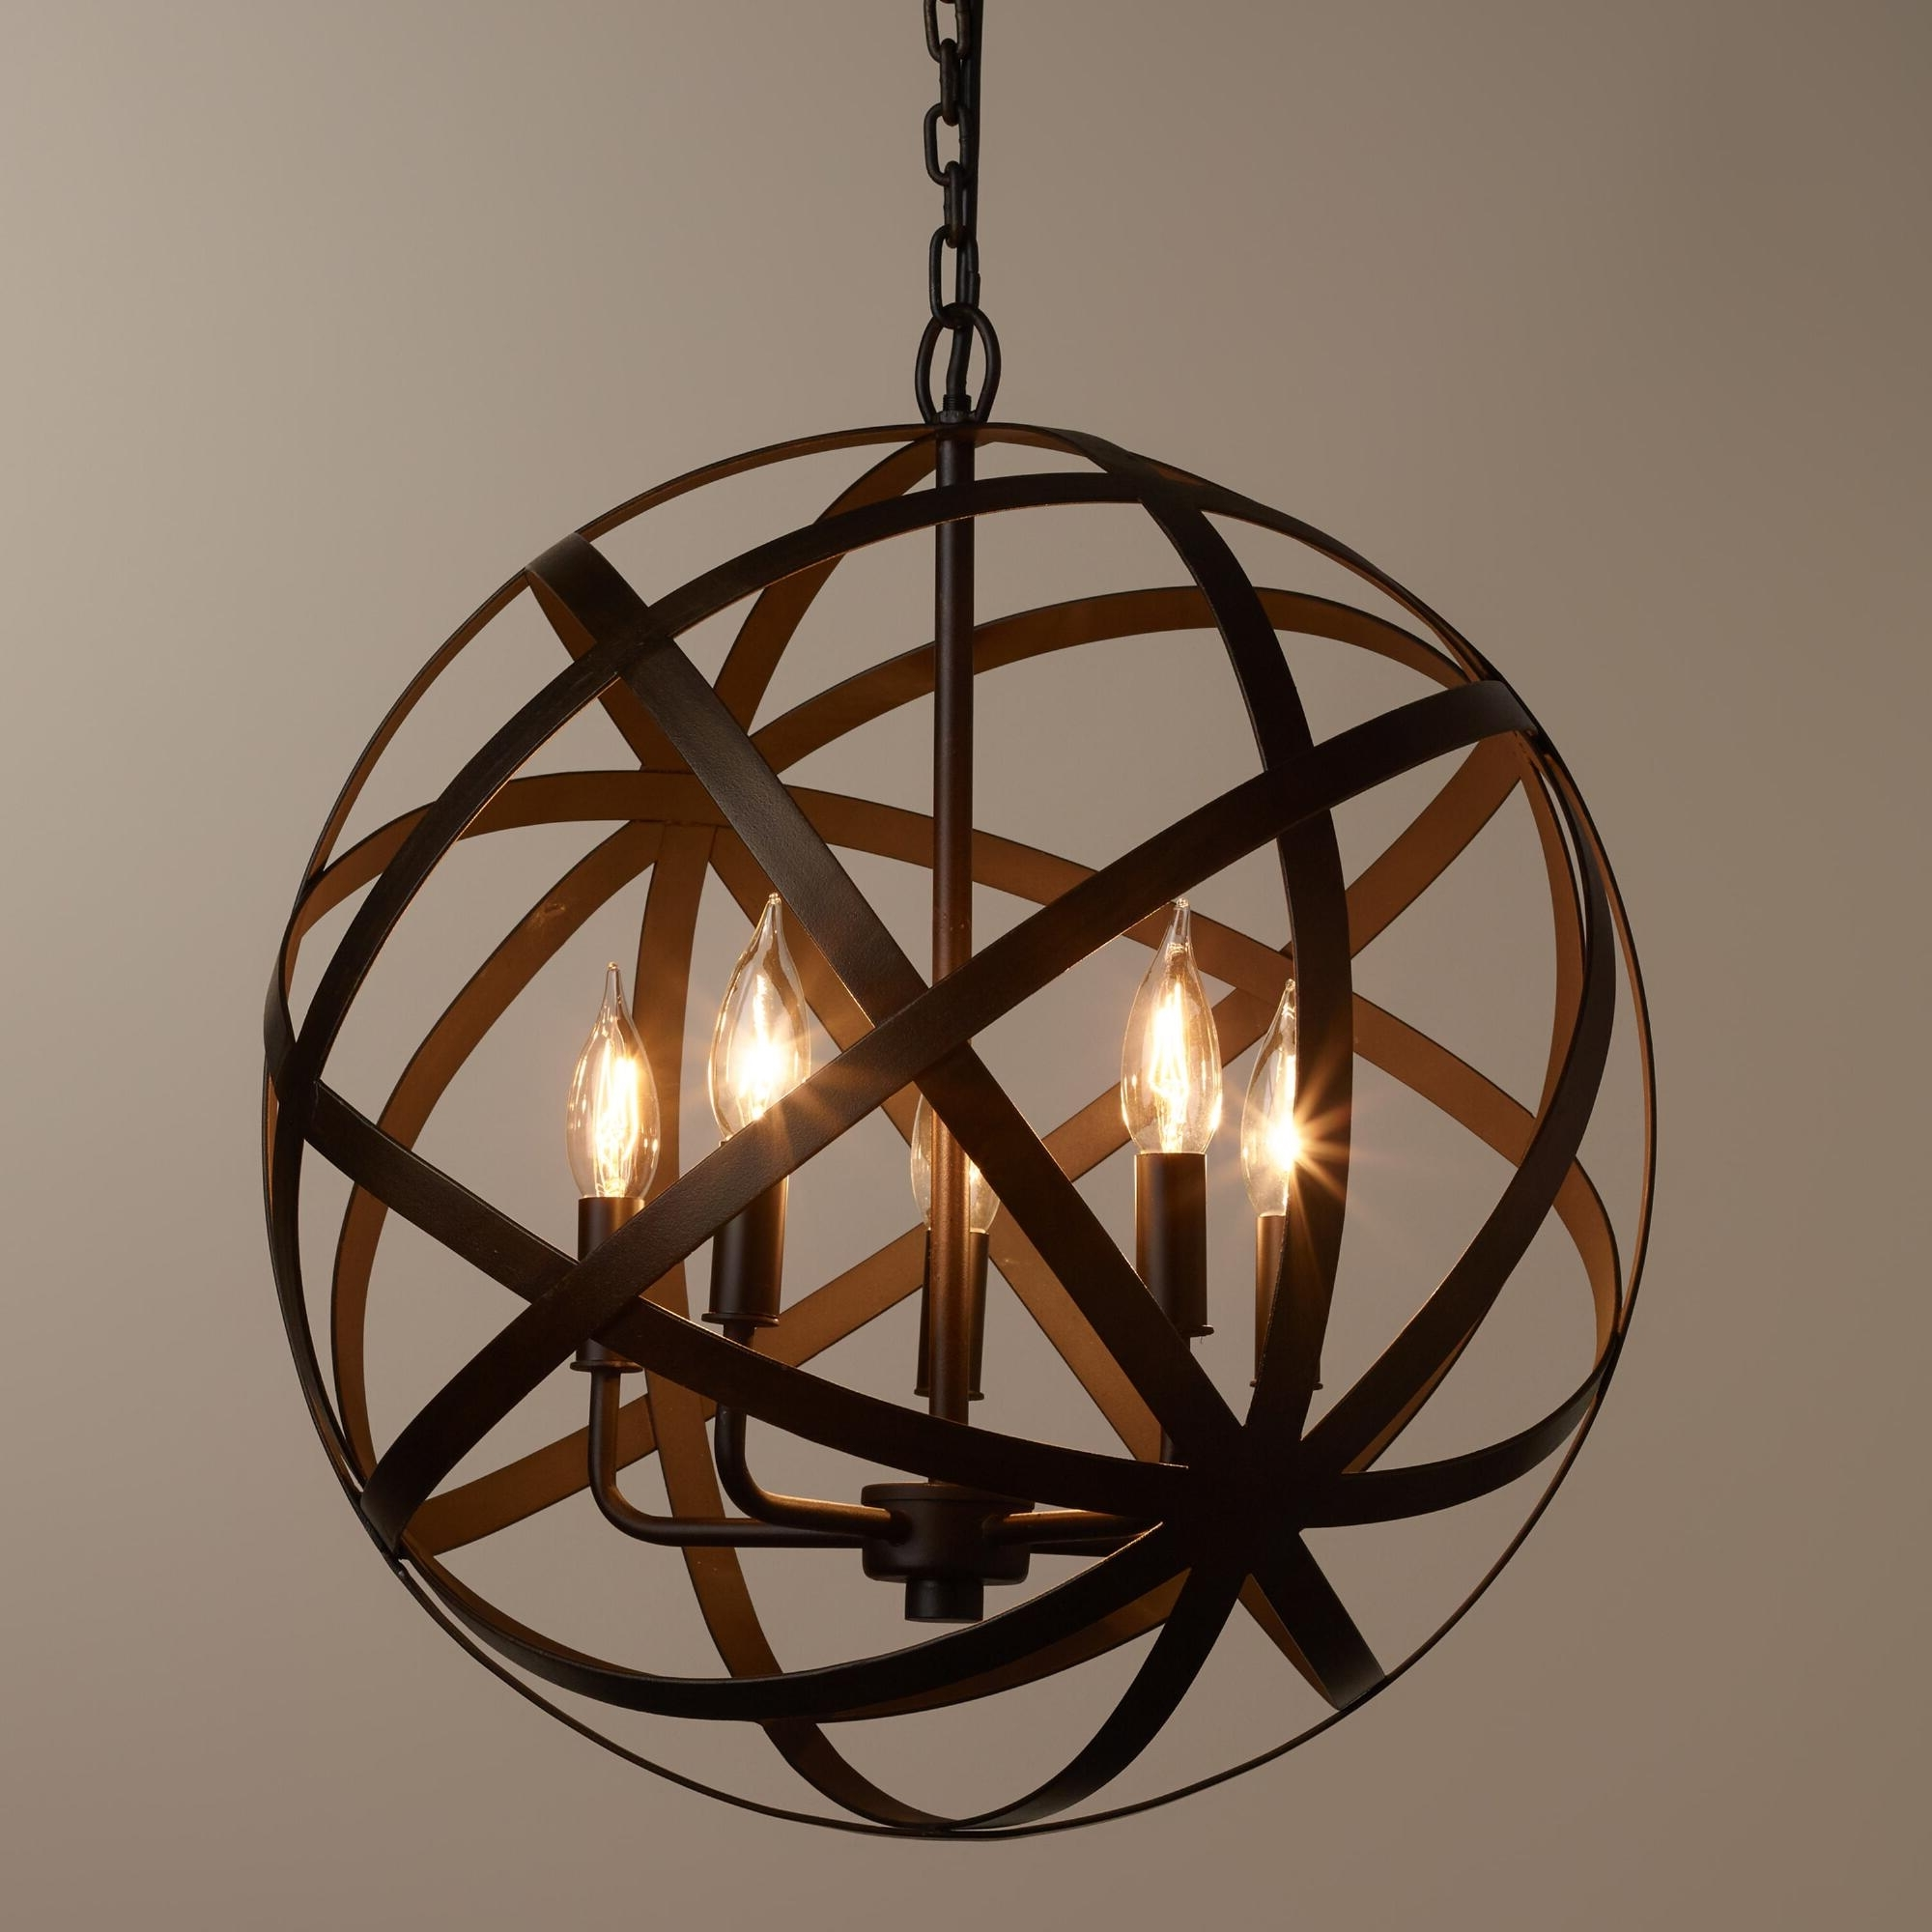 Widely Used Globe Chandeliers Intended For Chandelier: Marvellous Large Orb Chandelier Large Foyer Chandeliers (View 15 of 20)